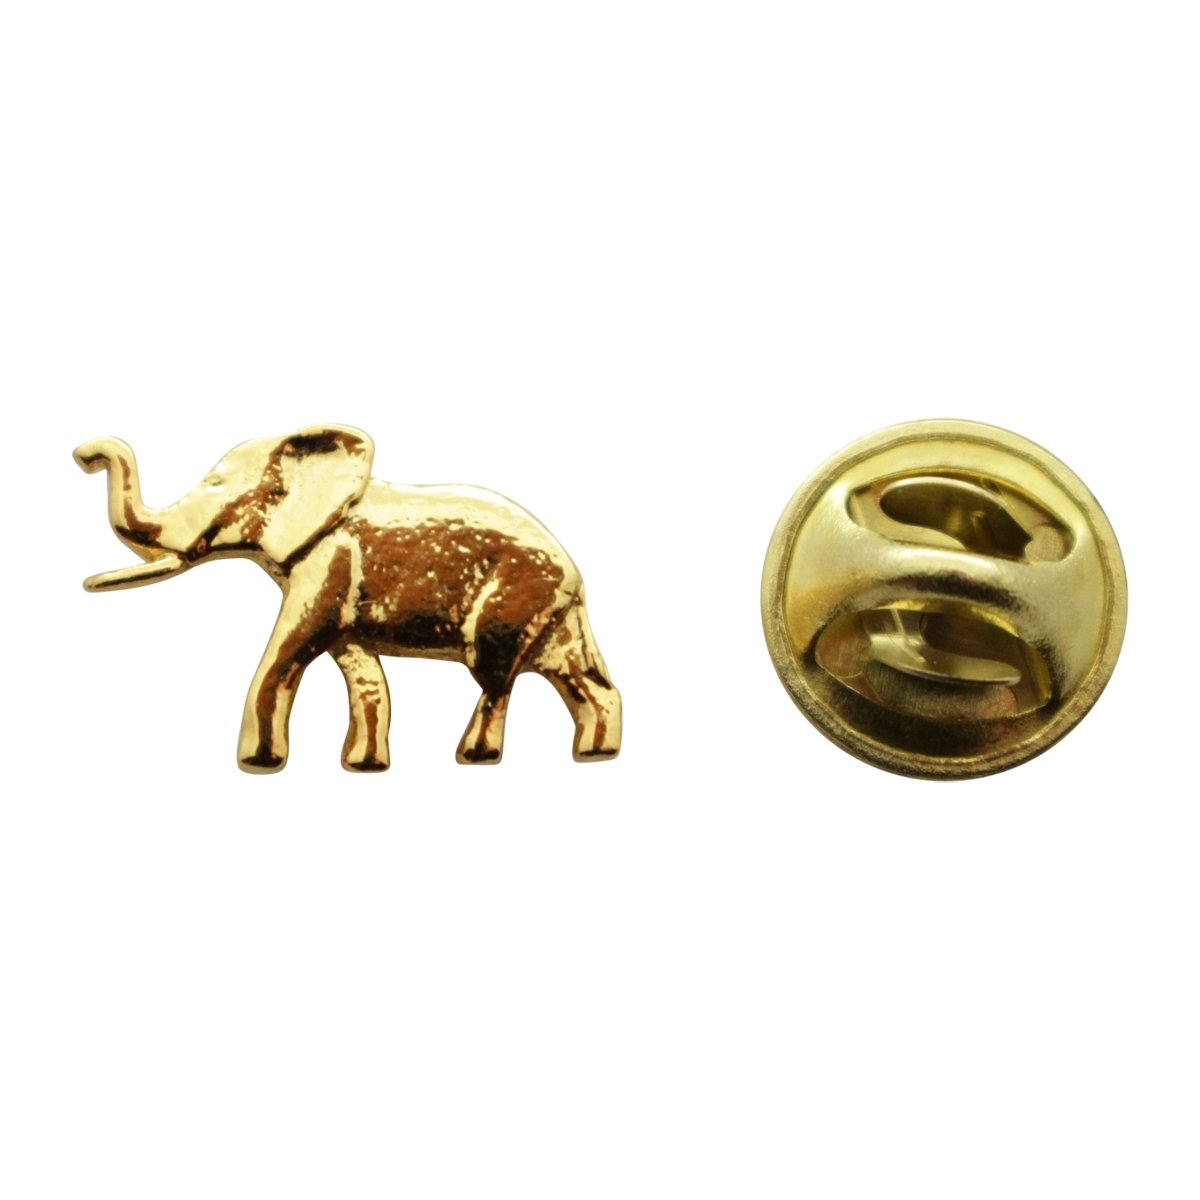 Elephant Mini Pin ~ 24K Gold ~ Miniature Lapel Pin ~ Sarah's Treats & Treasures G.G. Harris STT-M490-G-MP